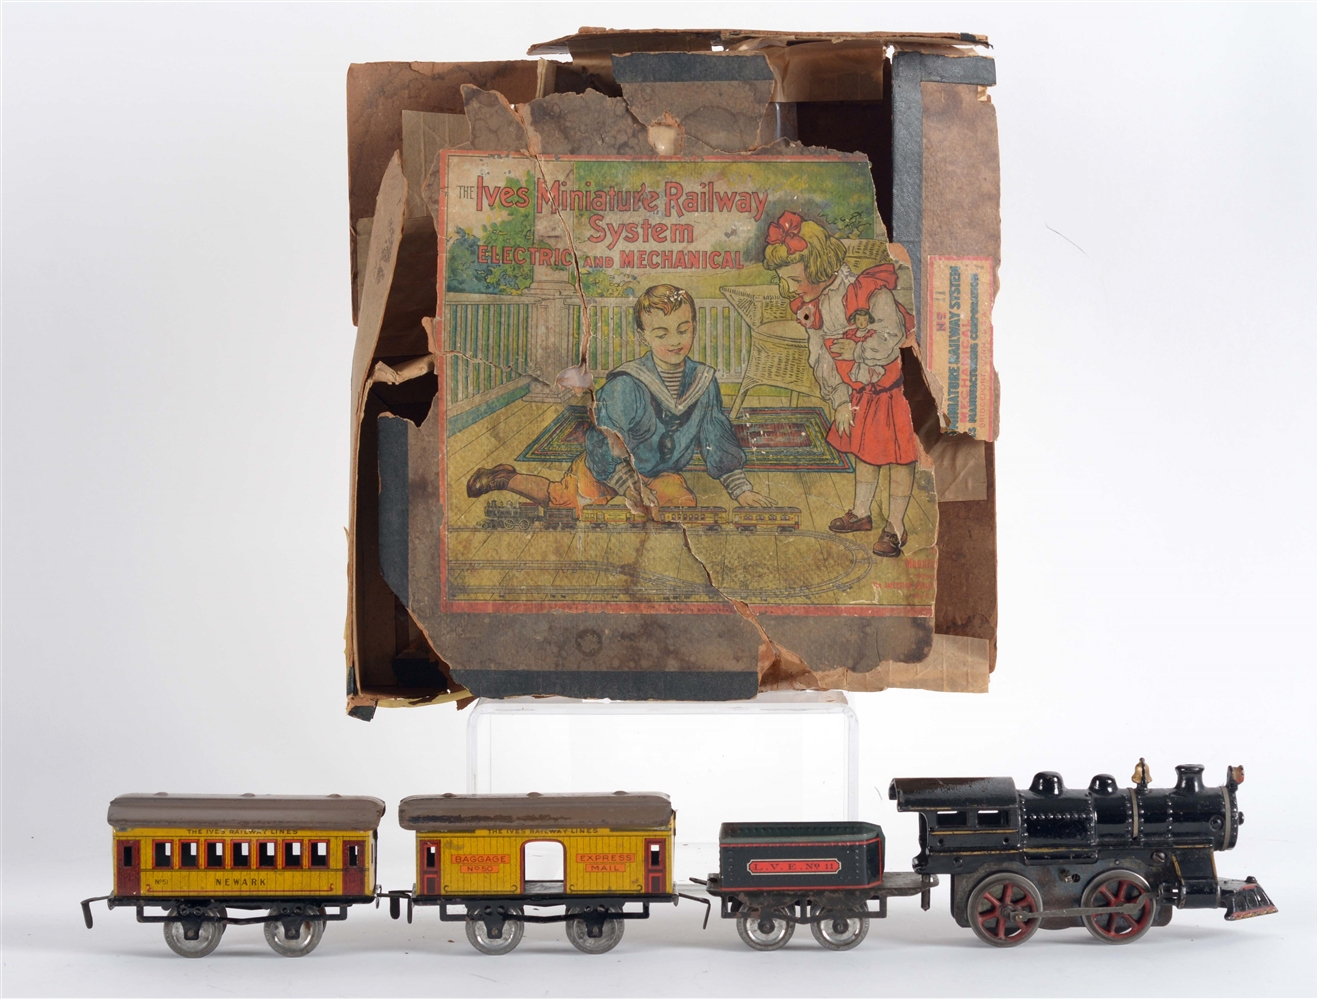 Early Ives O Gauge Miniature Railway Passenger Train Set with Box.